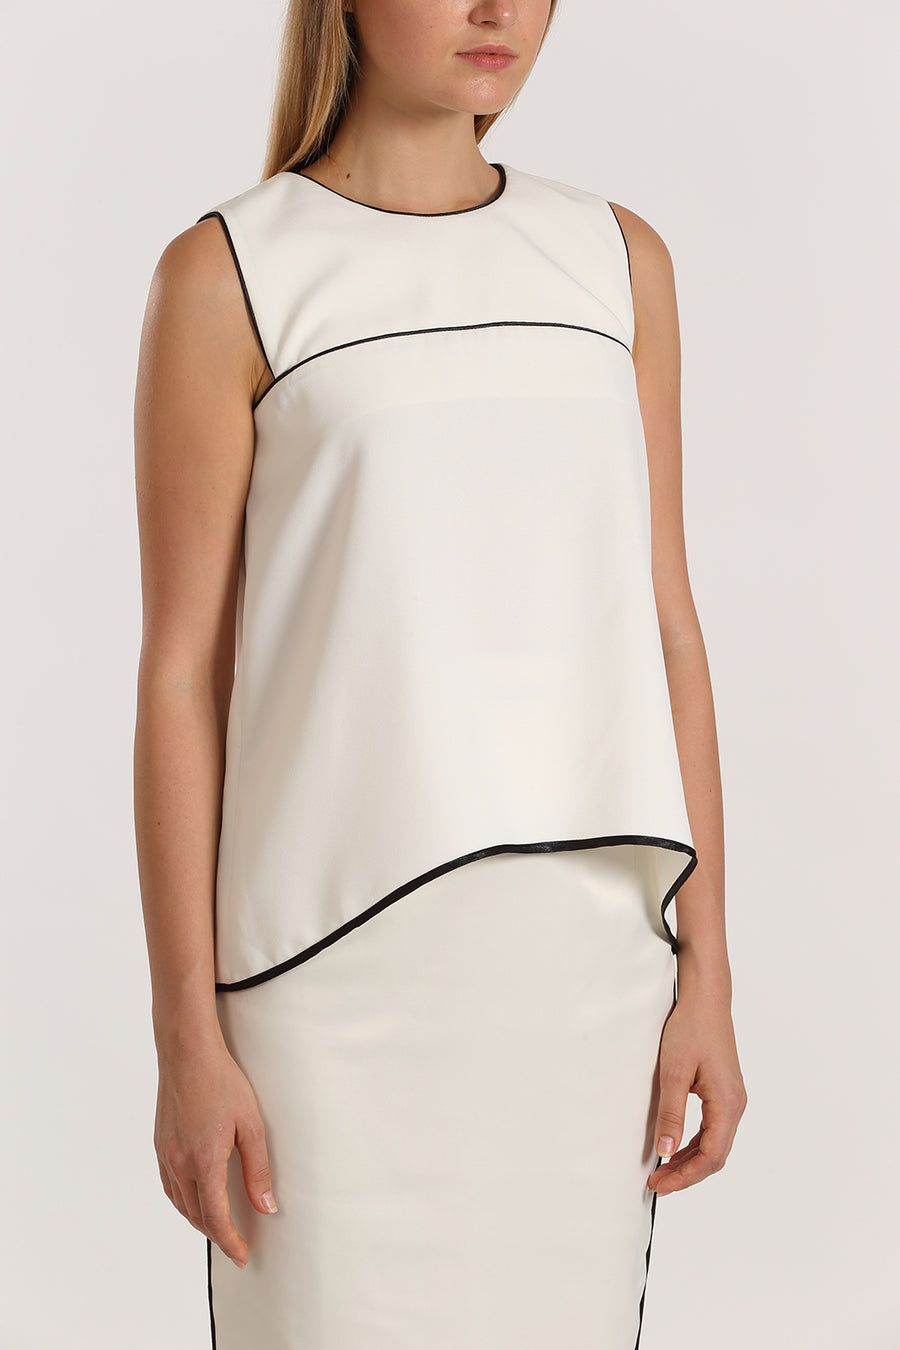 Sleeveless Binded Top | White